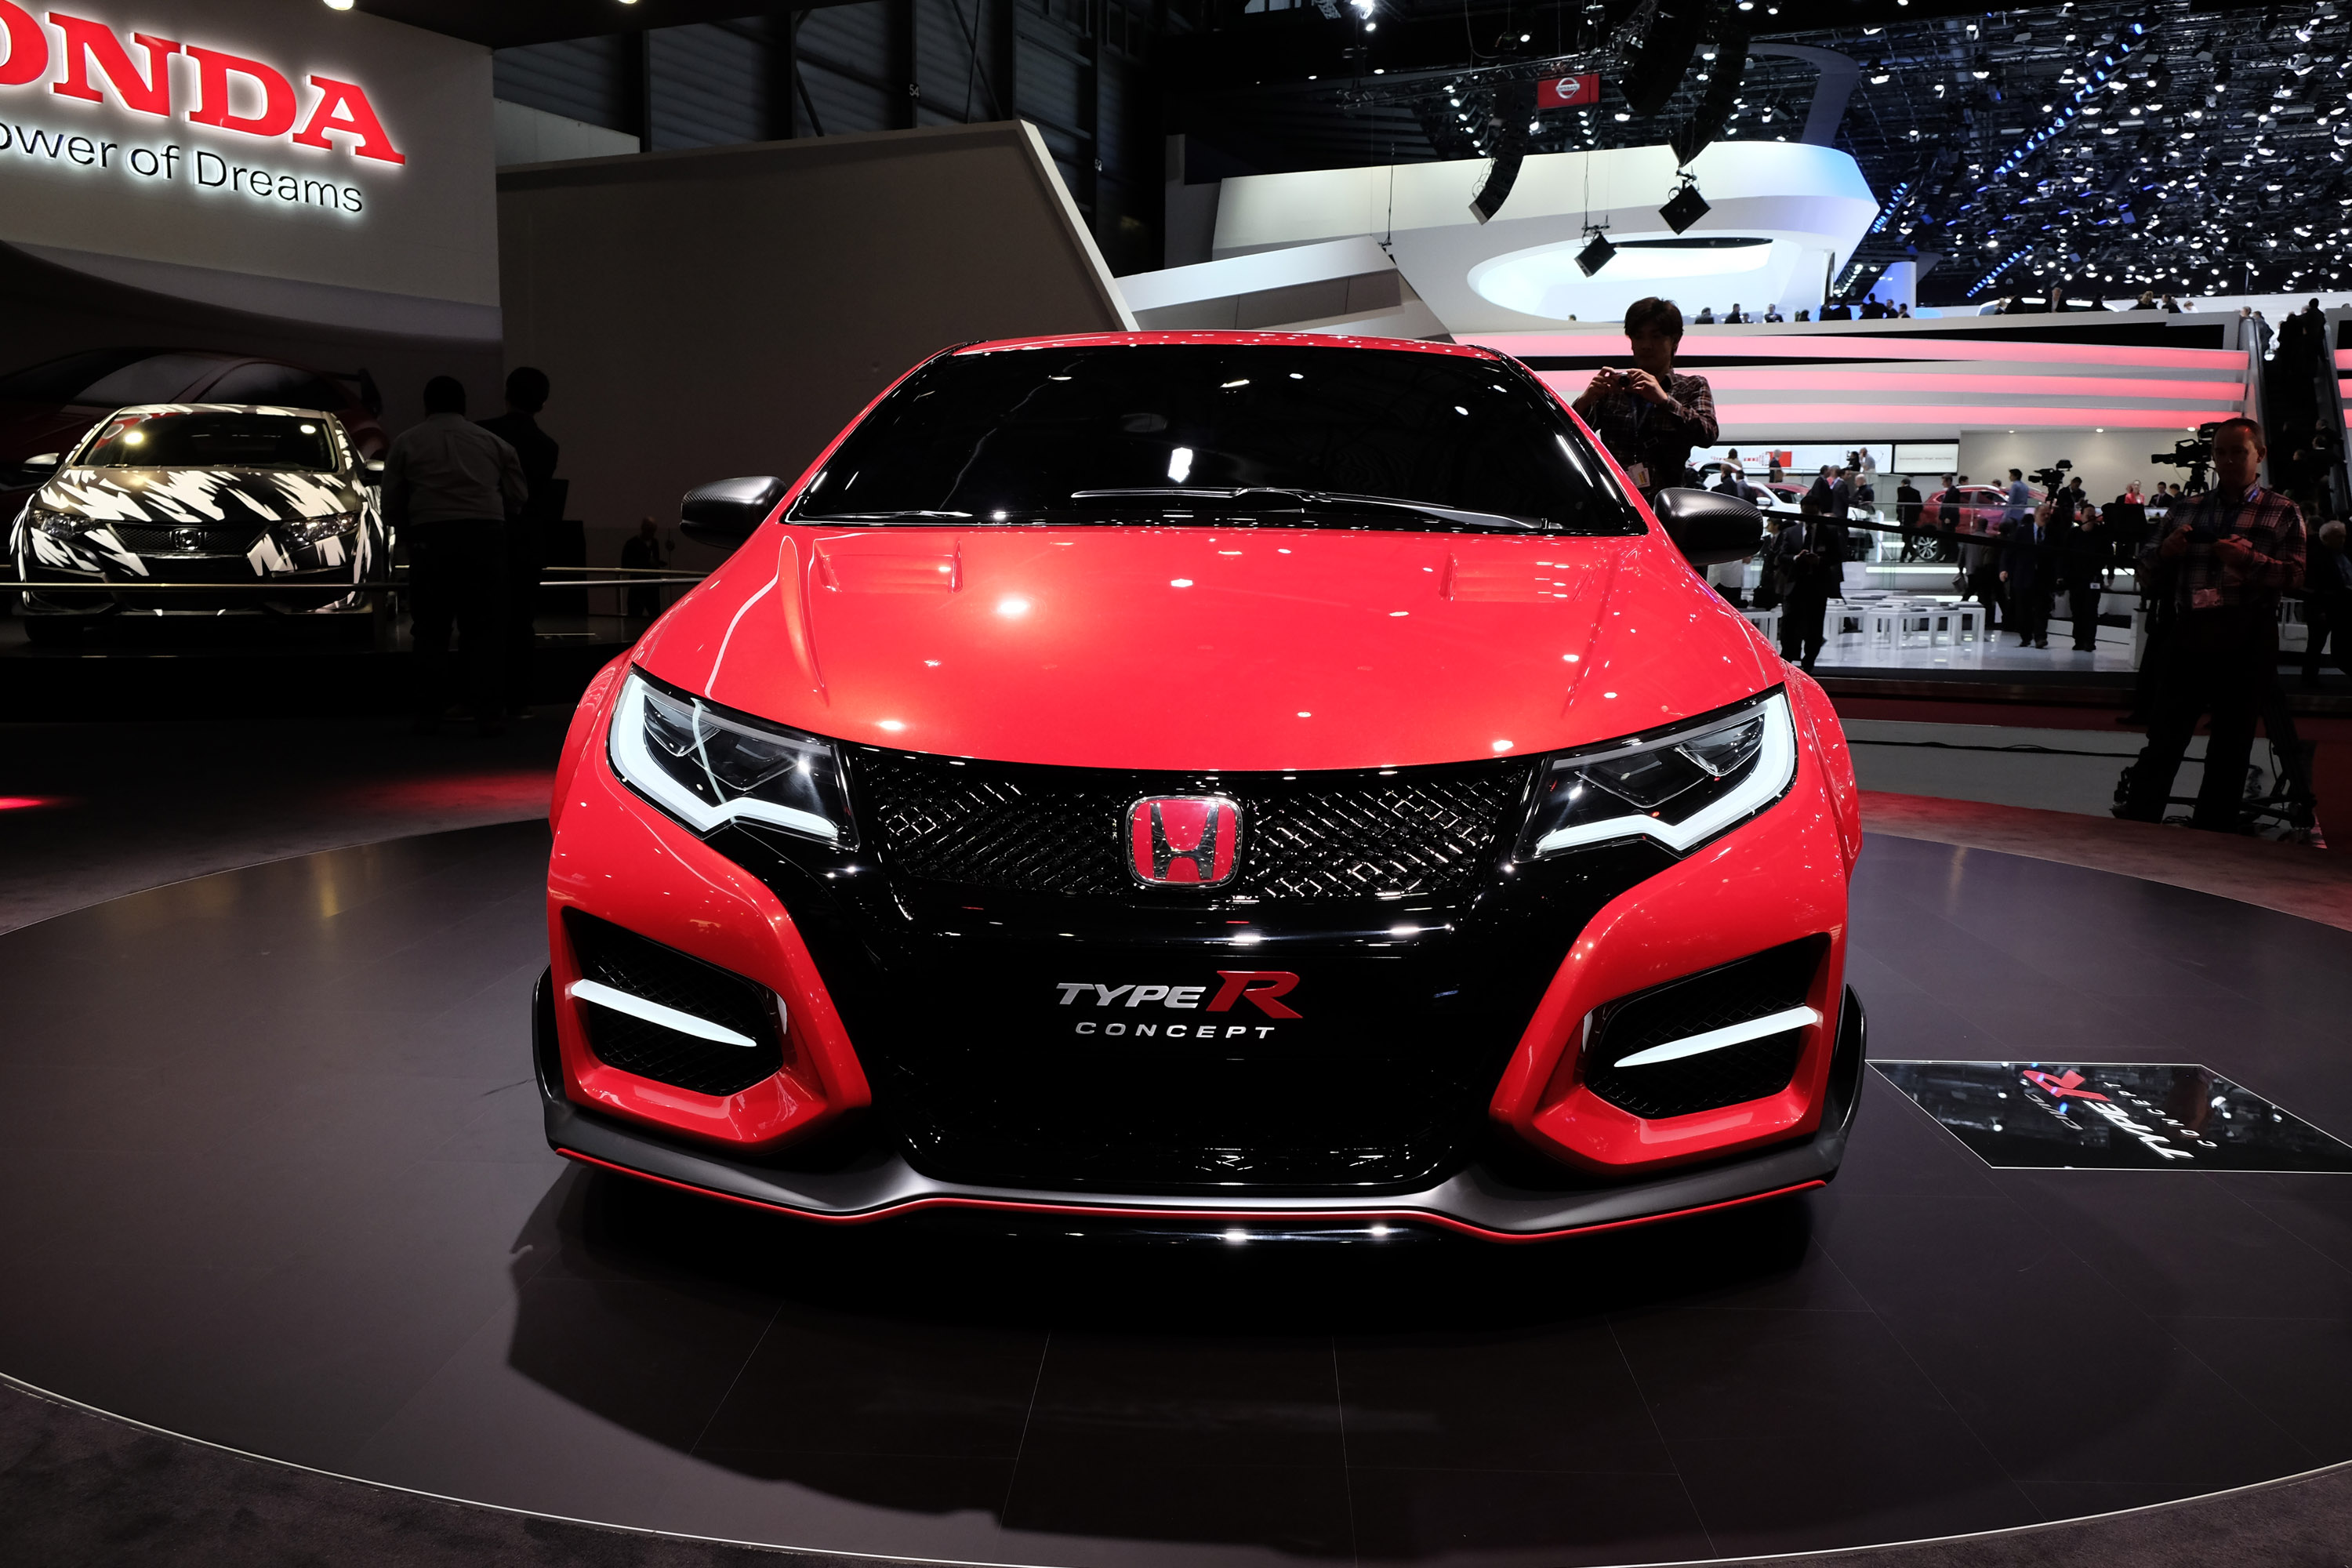 honda civic type r concept geneva 2014 picture 98990. Black Bedroom Furniture Sets. Home Design Ideas